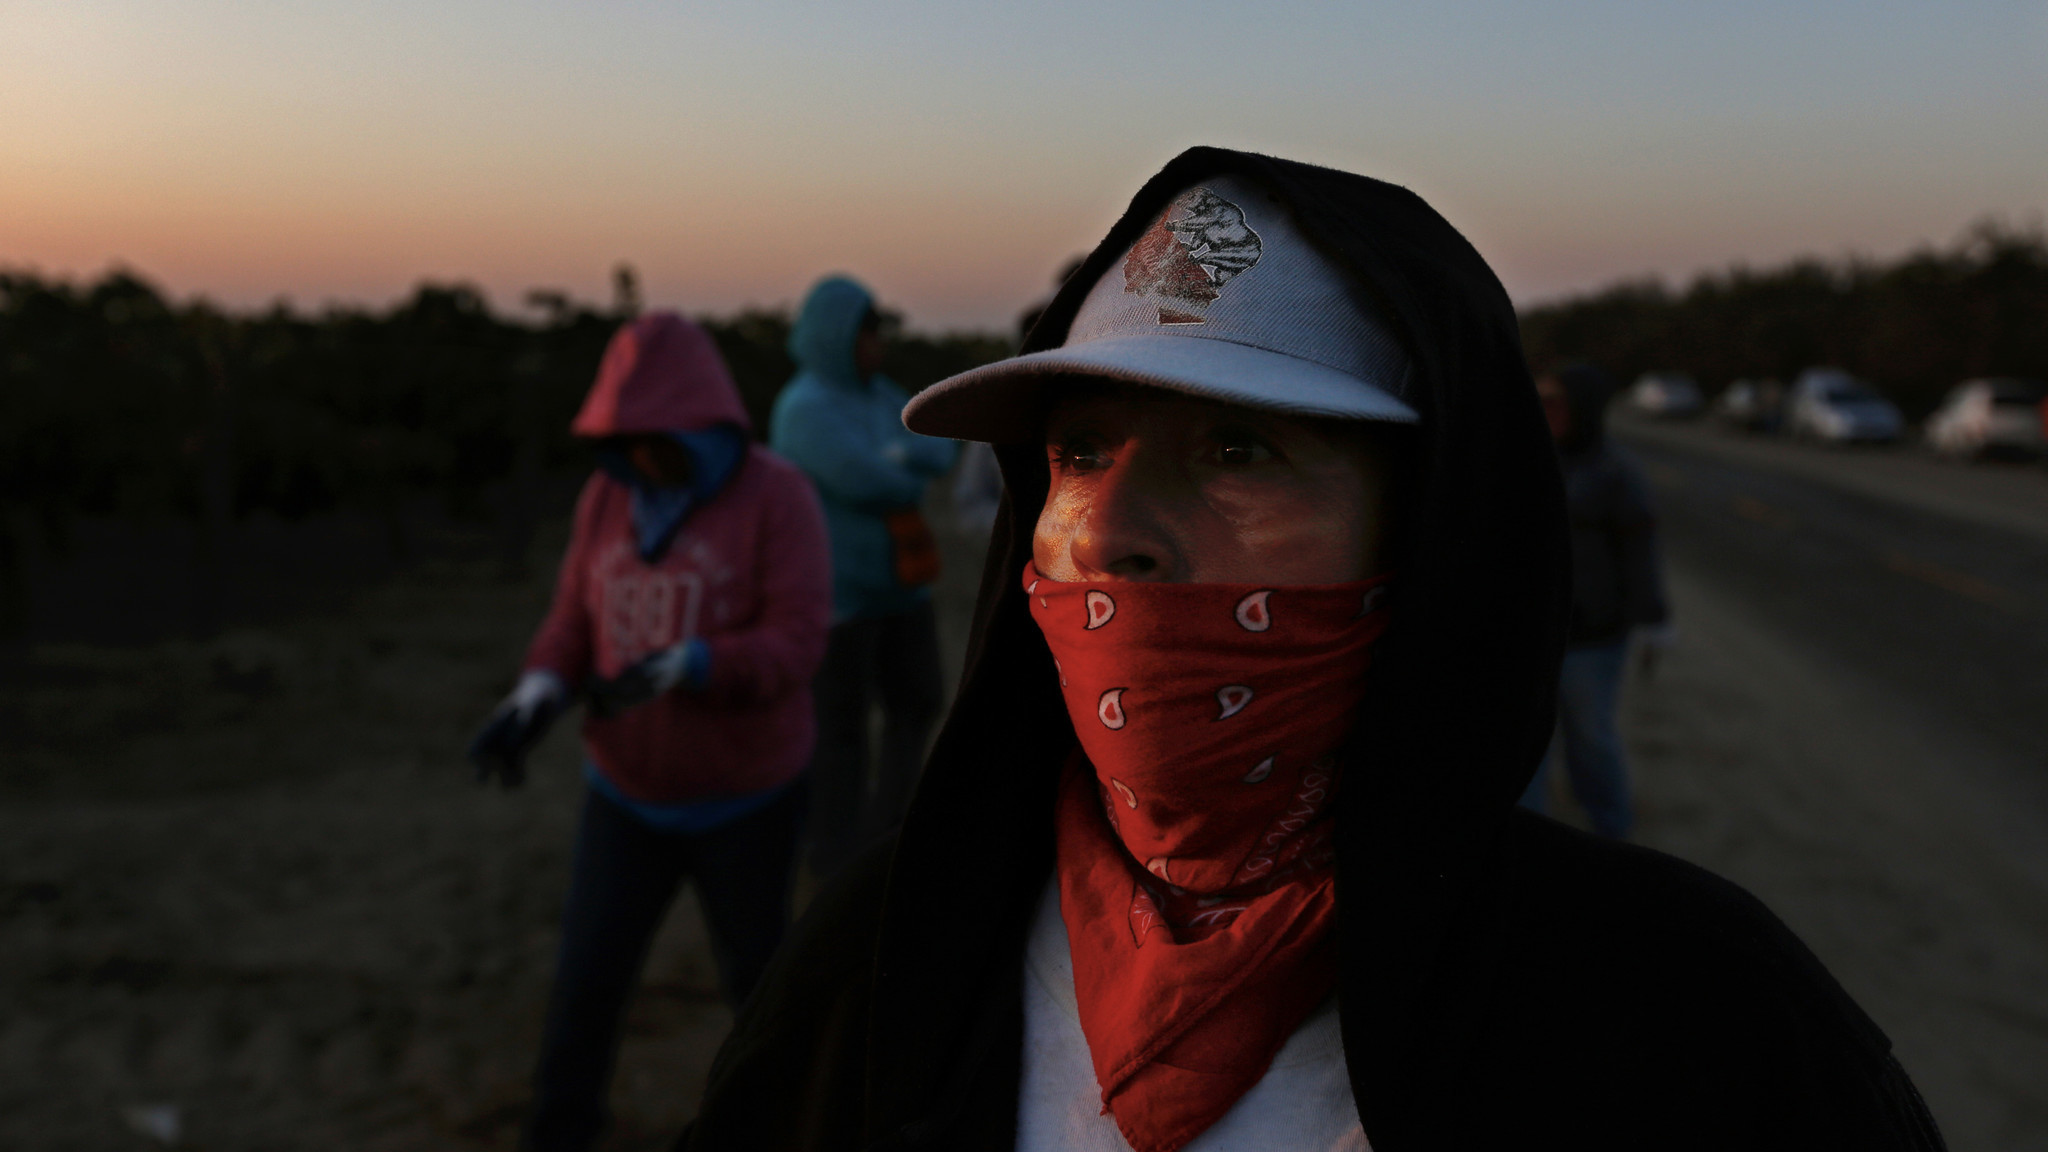 Lourdes Cardenas, 53, waits for the OK to begin picking grapes in a field in Madera, Calif.,